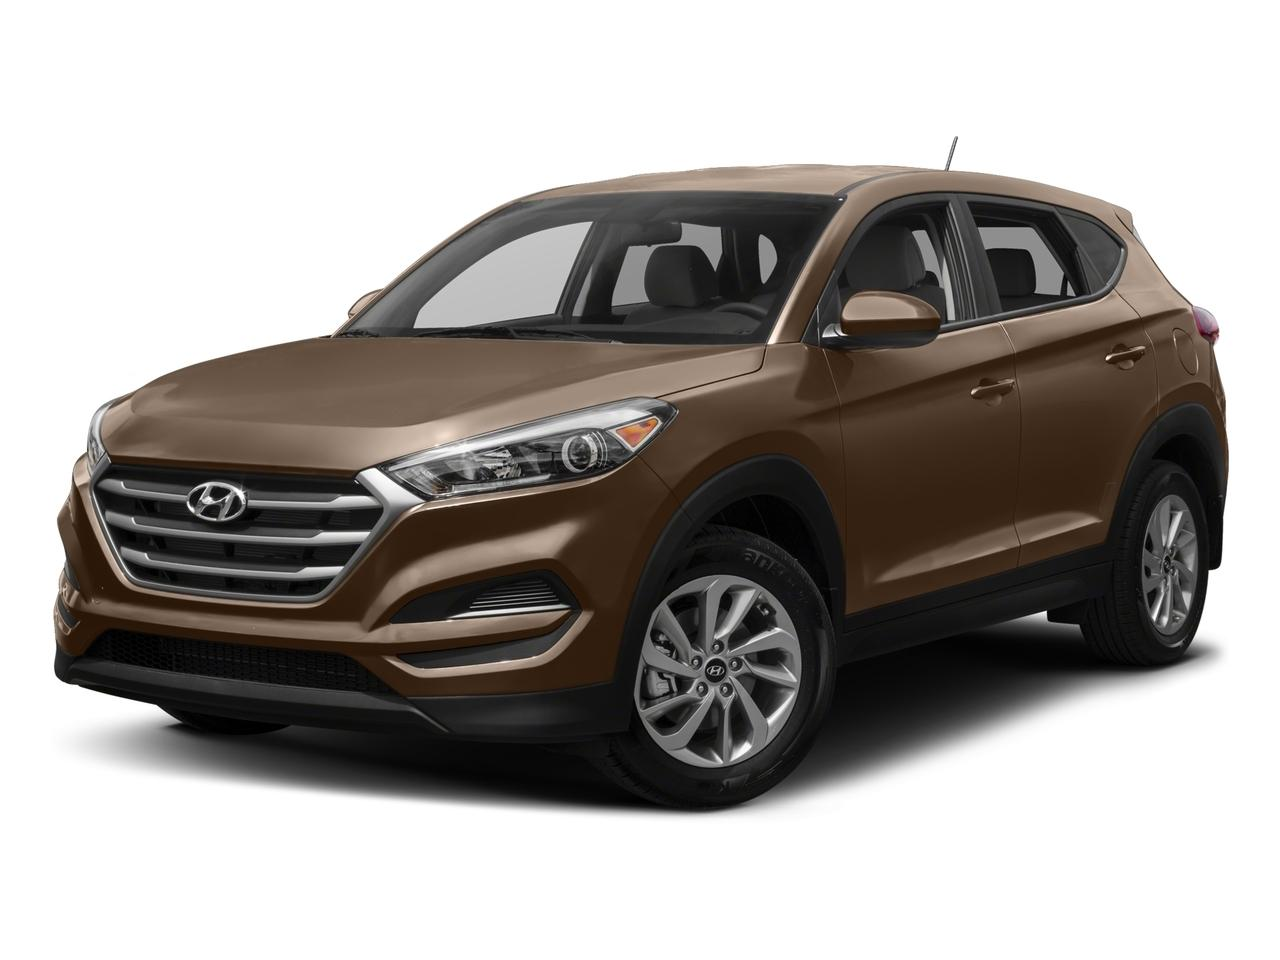 2017 Hyundai Tucson Vehicle Photo in Nashua, NH 03060